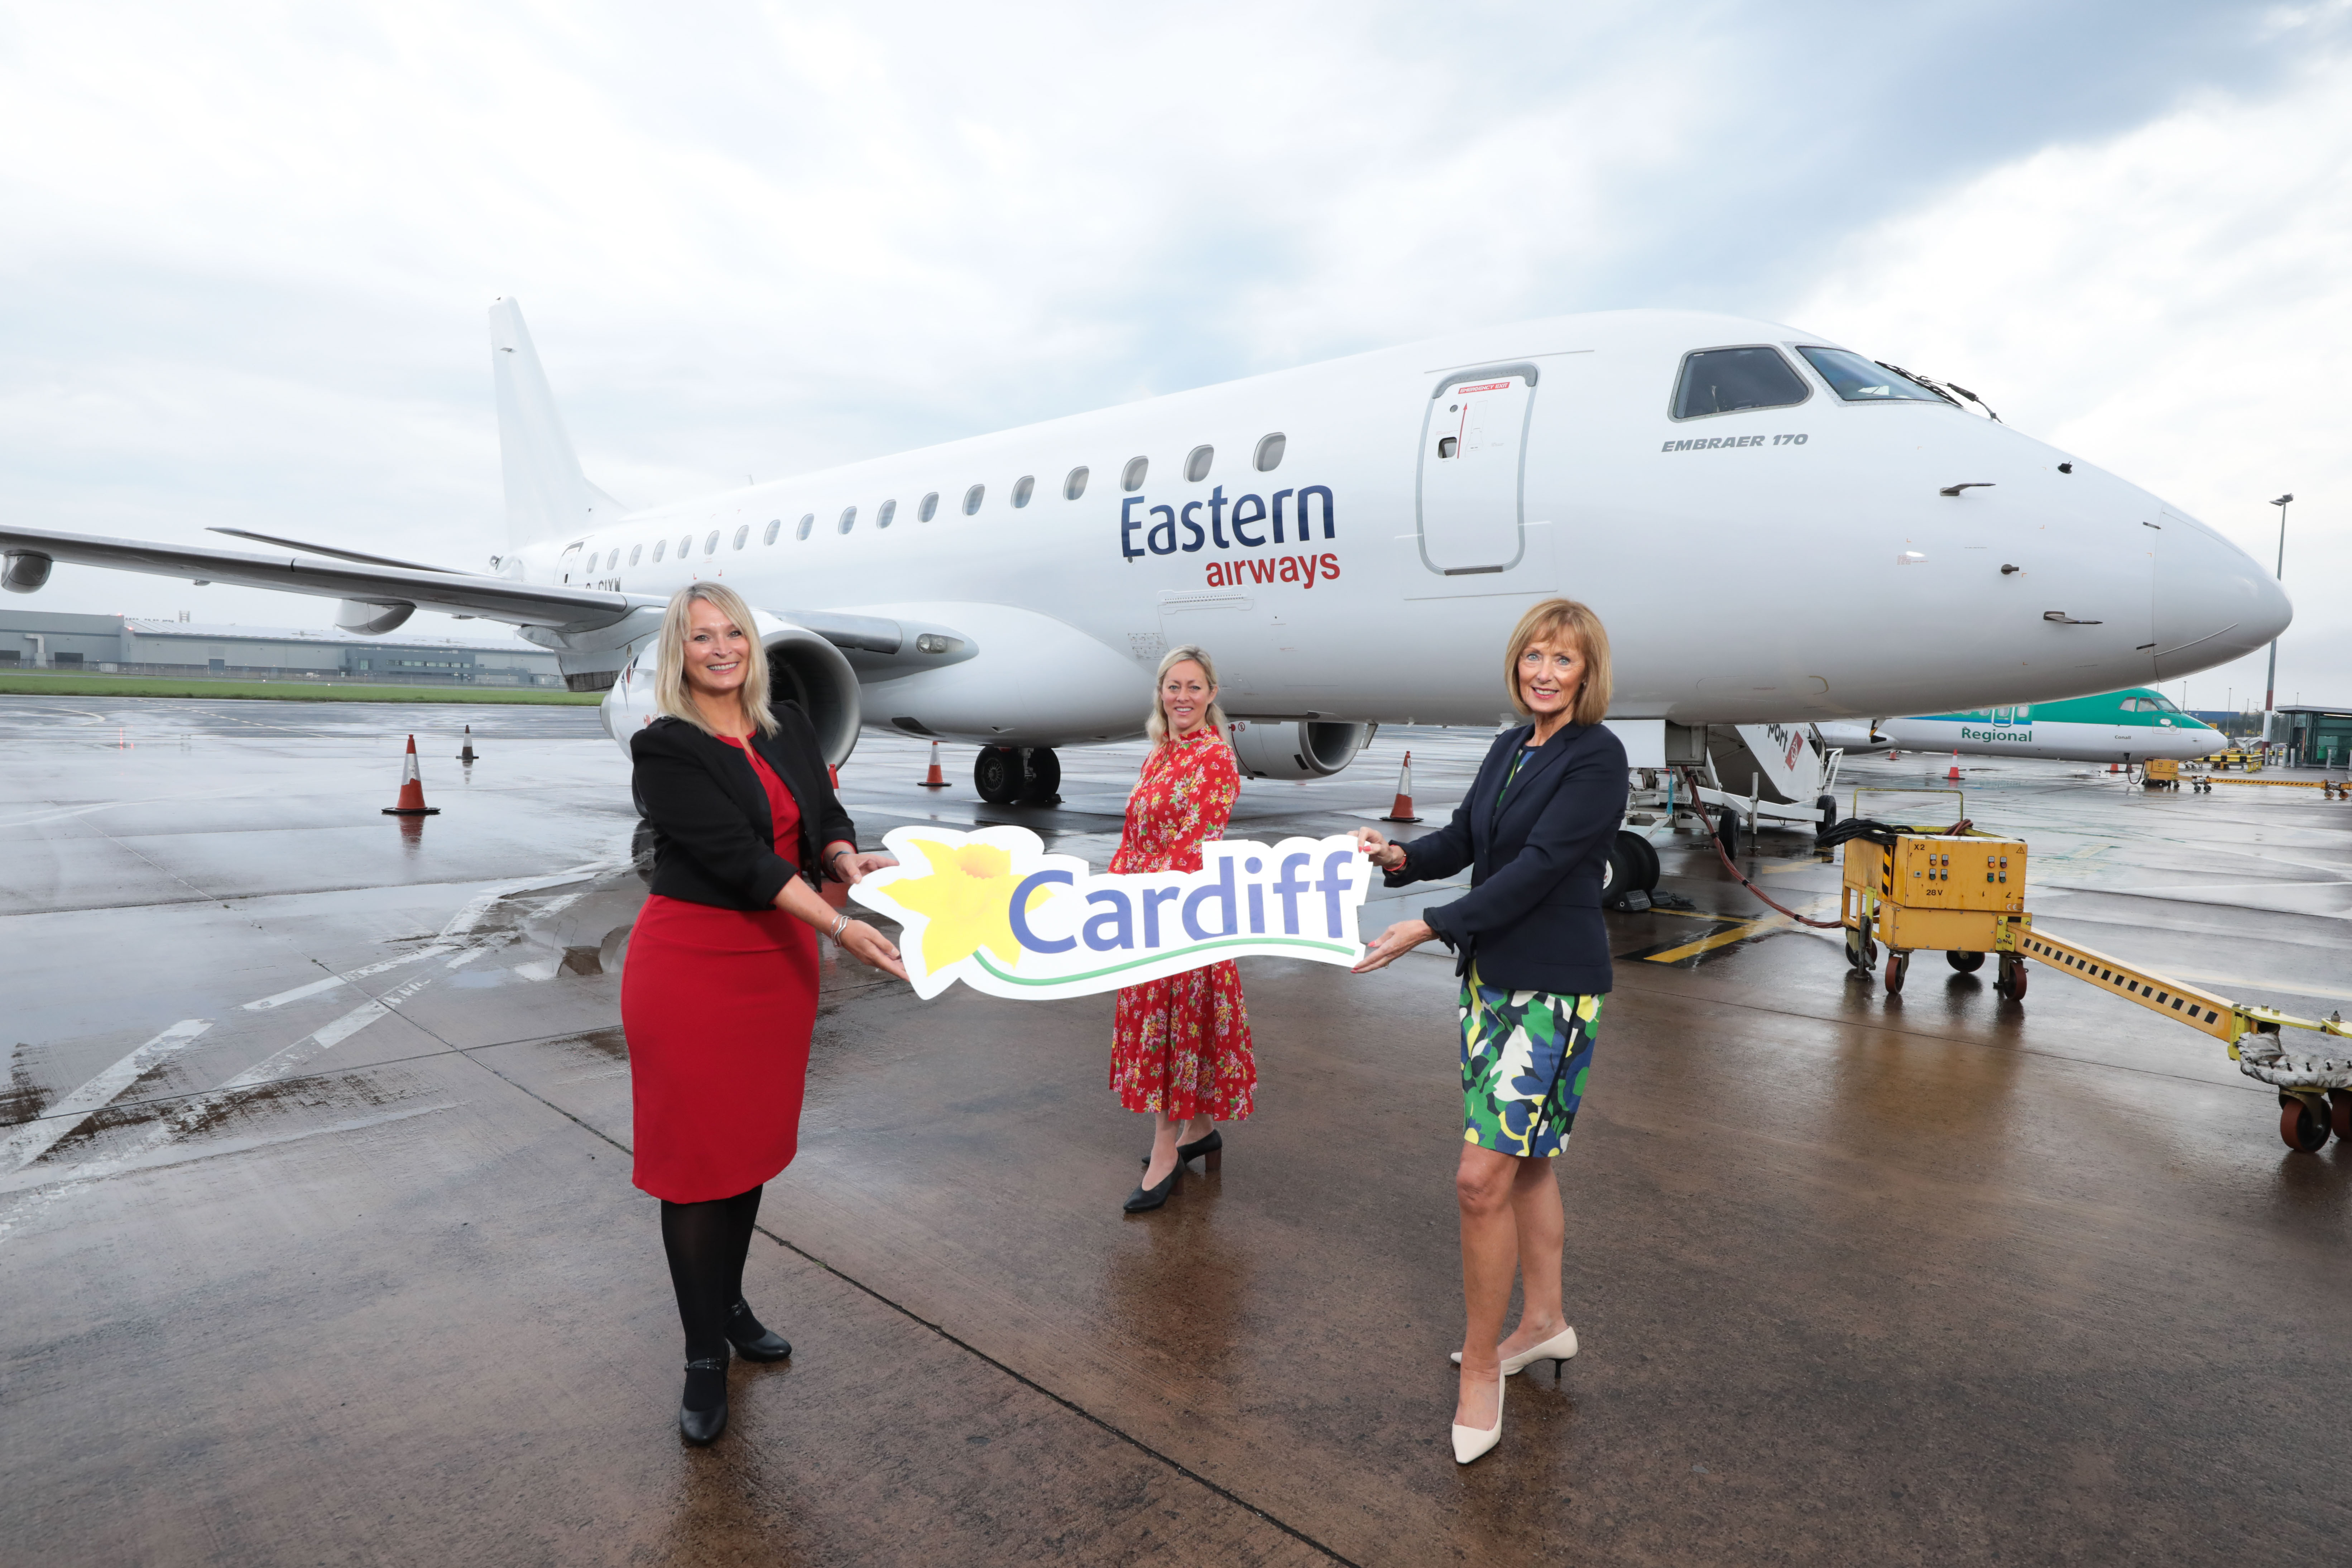 Eastern Airways Launches Cardiff Route From Belfast City Airport